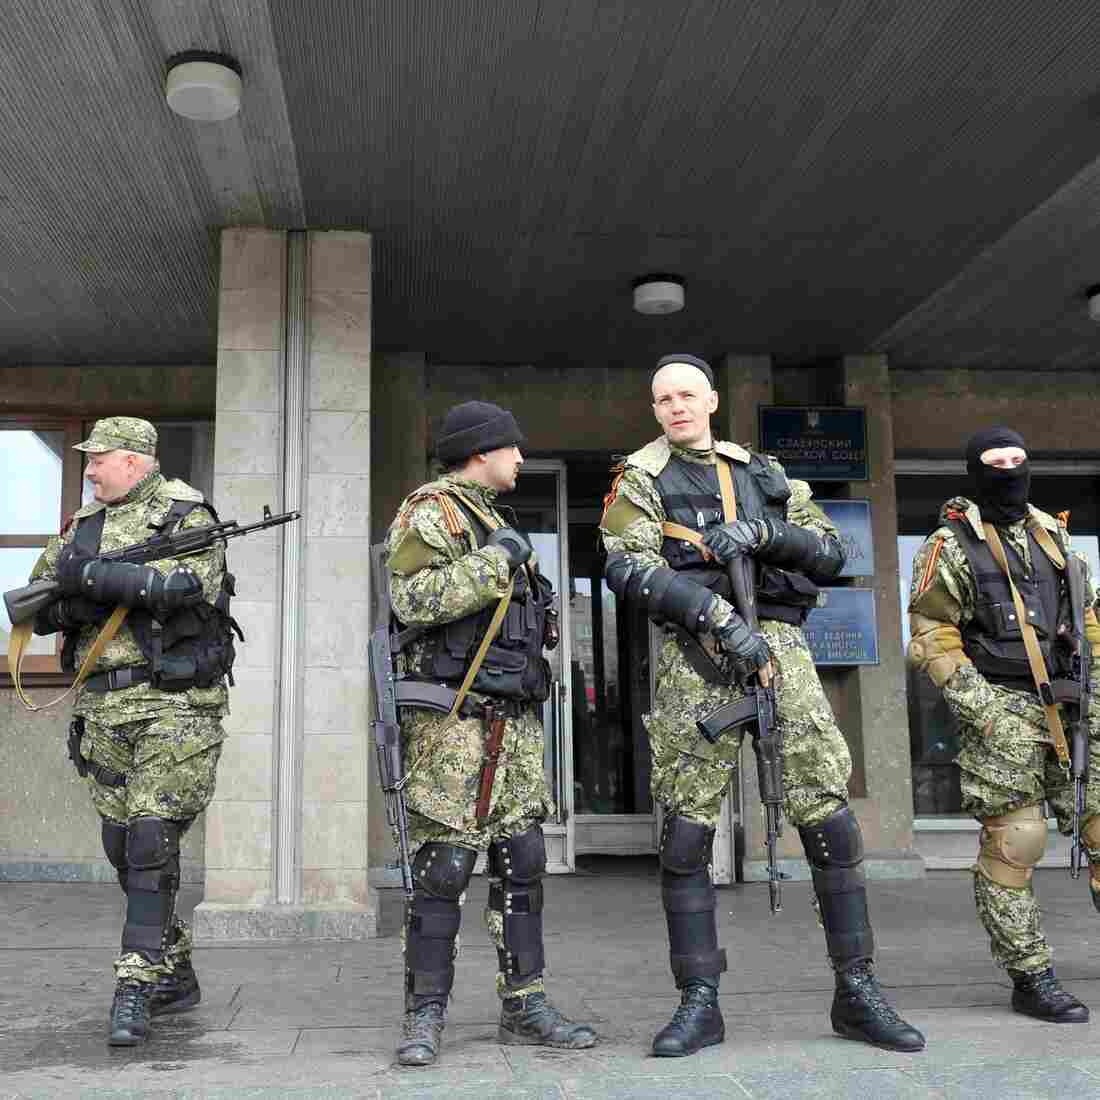 In Ukraine: Pro-Russia Occupiers Defy Deadline, War Fears Grow